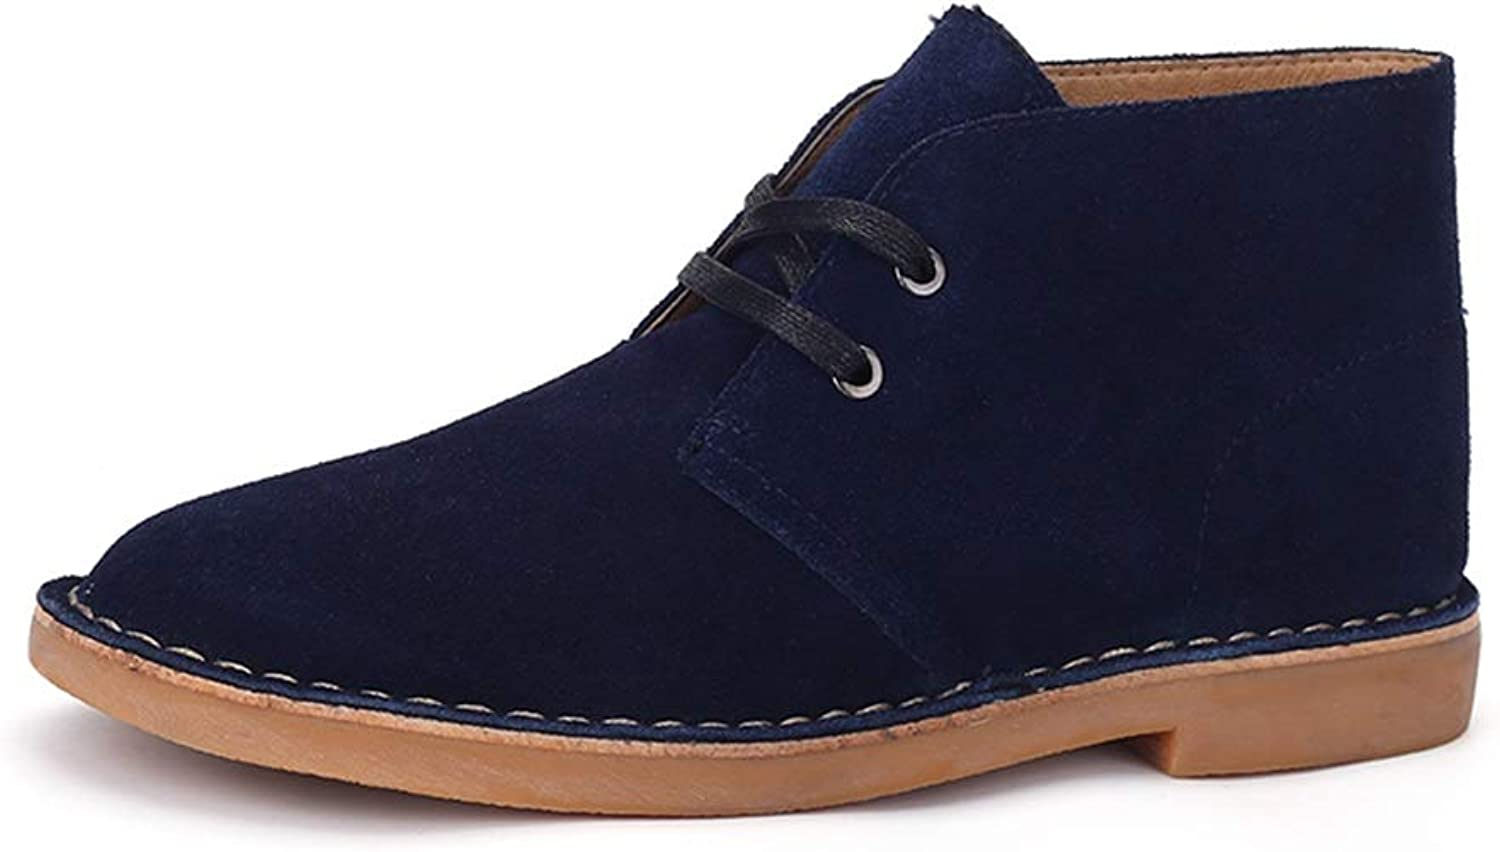 I Migliori venditori di Sautope Oxford da Uomo Oxfords for Men Desert Chukka stivali Pelle Scamosciata Upper classeic Casual Sautope comode Lace up Resistente tutti'Usura Dress Oxford sautope